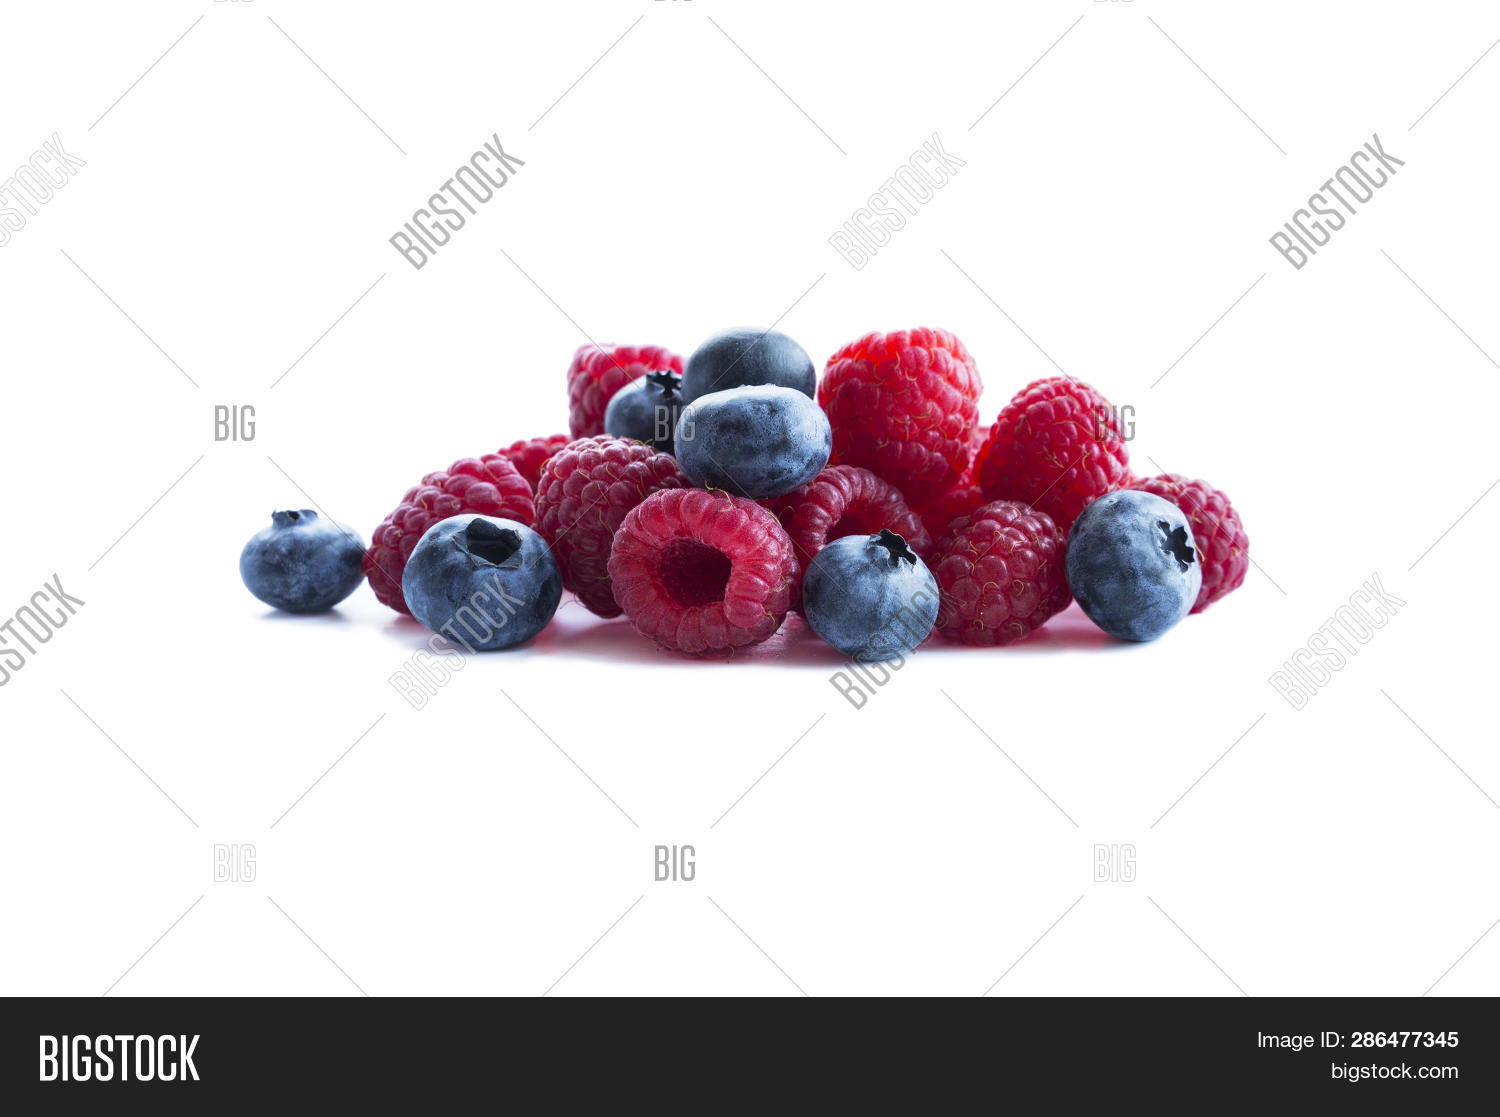 Berries Isolated On White Background. Ripe Blueberries And Raspberries. Background Of Mix Berries Wi